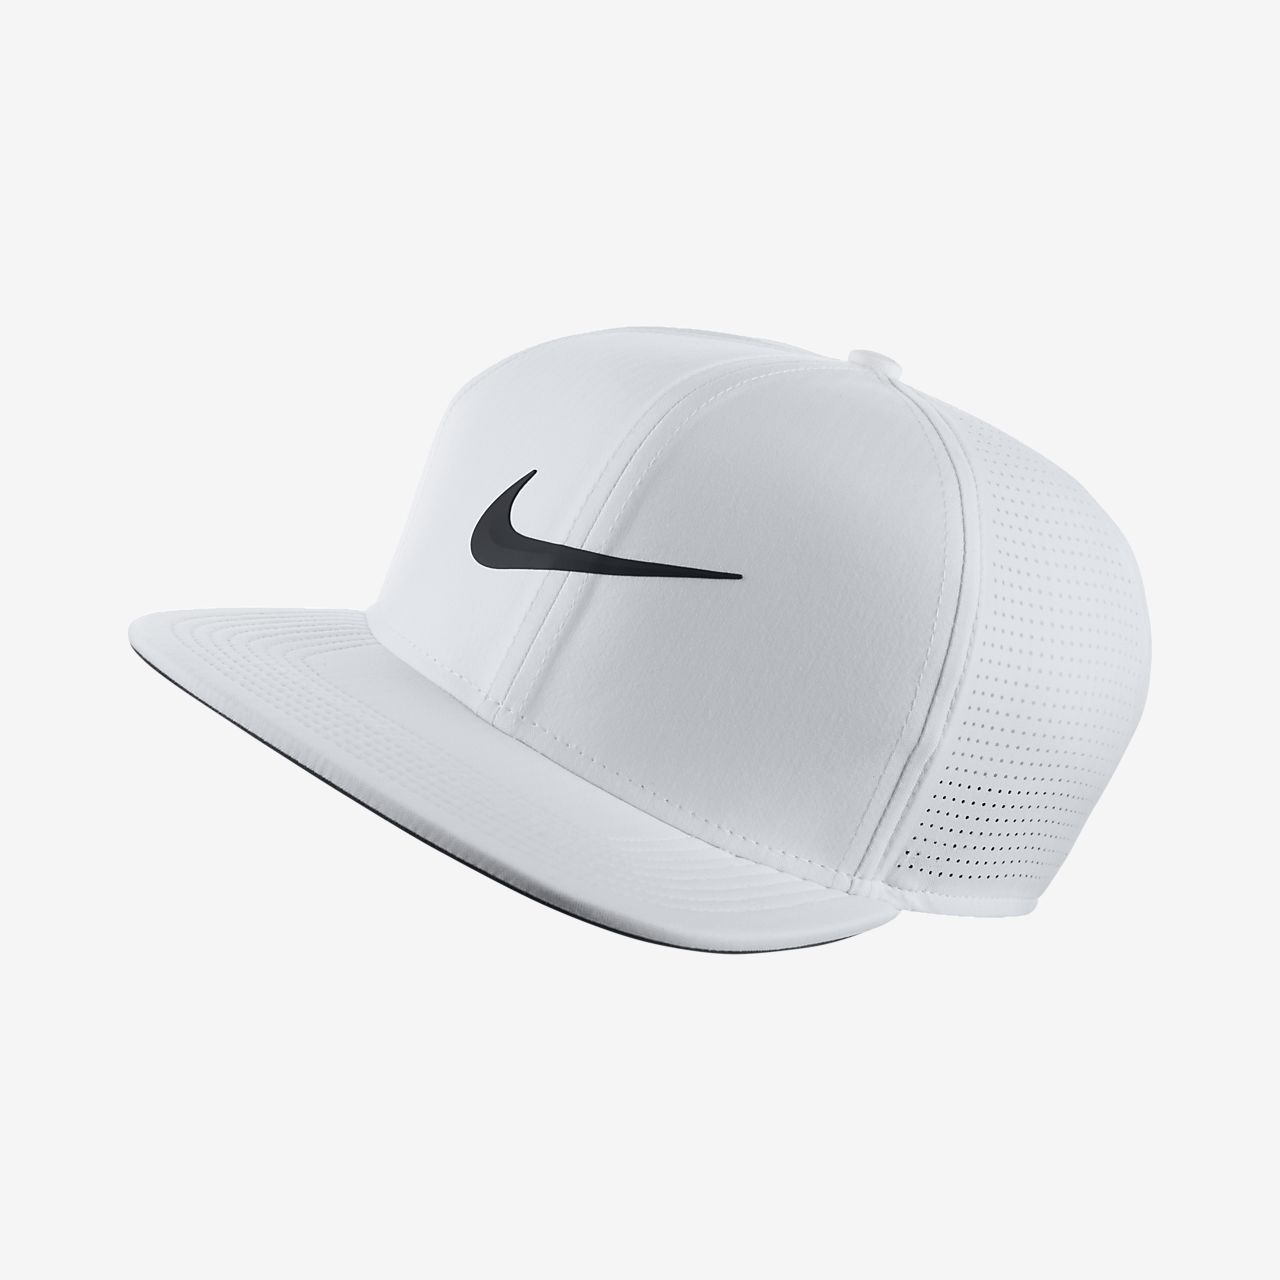 db42390c70a1 Nike AeroBill Adjustable Golf Hat. Nike.com